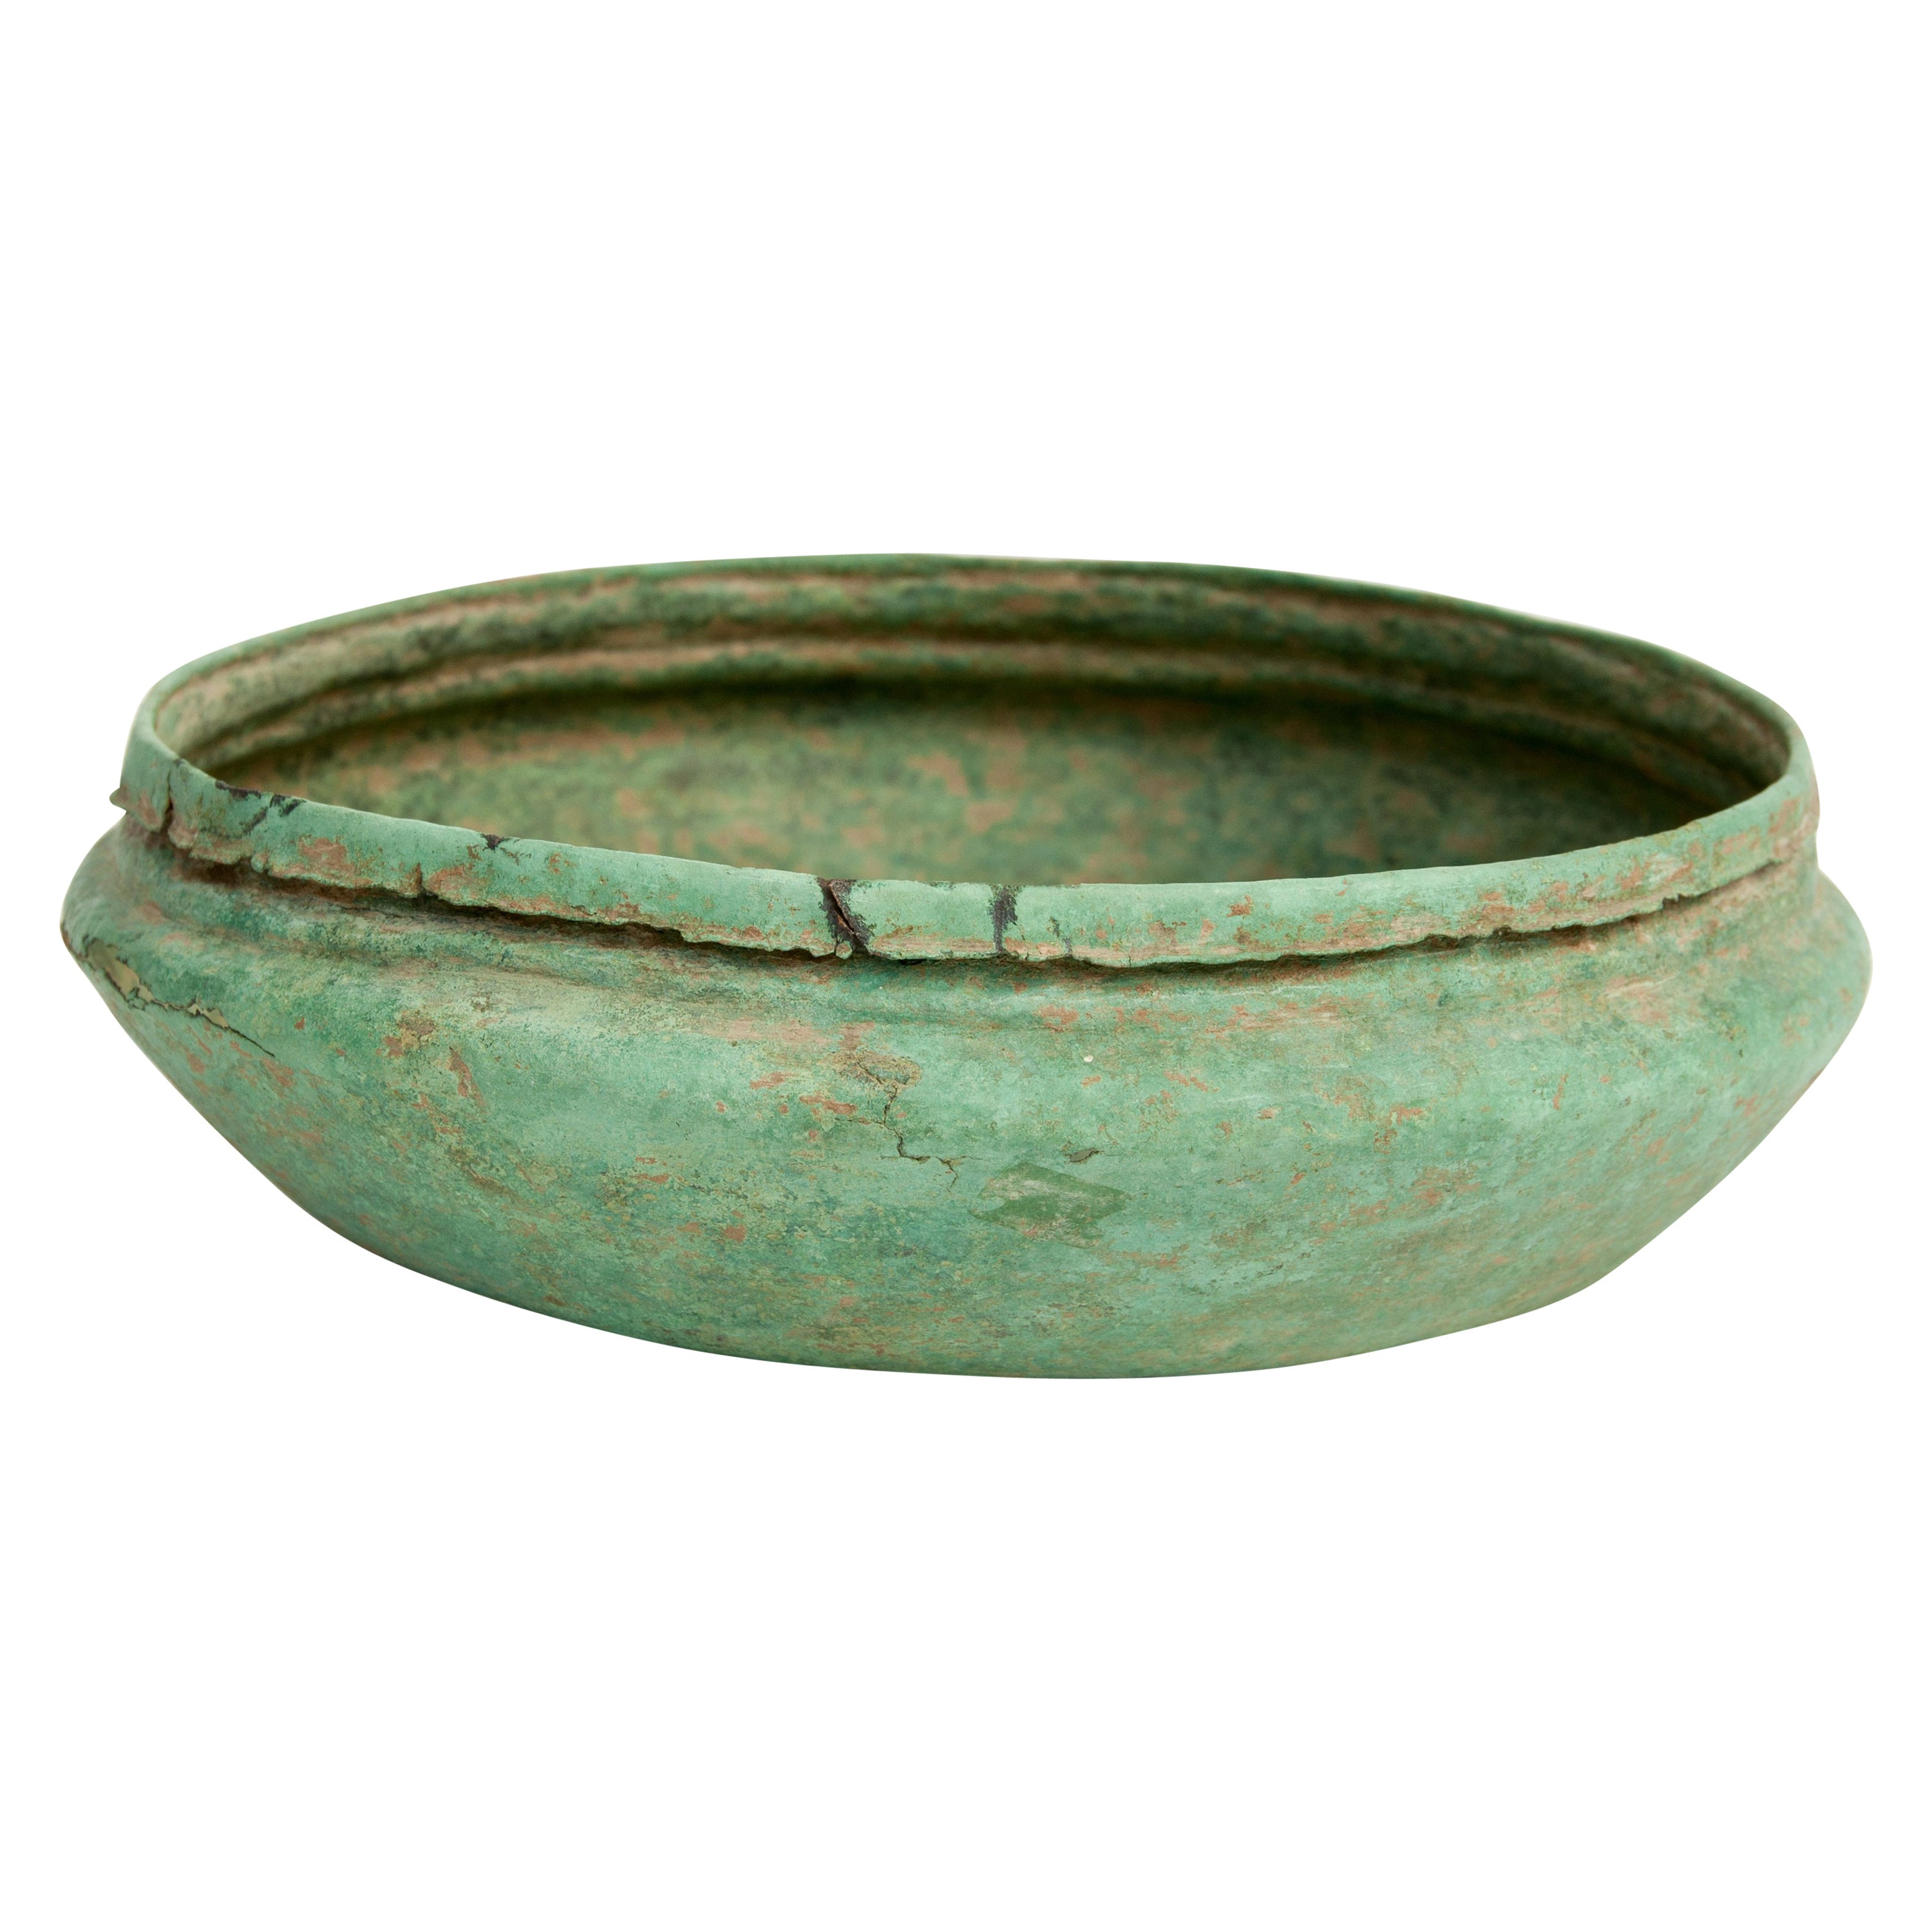 Antique Copper or Bronze Offering Bowl Eastern Thailand, 19th Century or Earlier